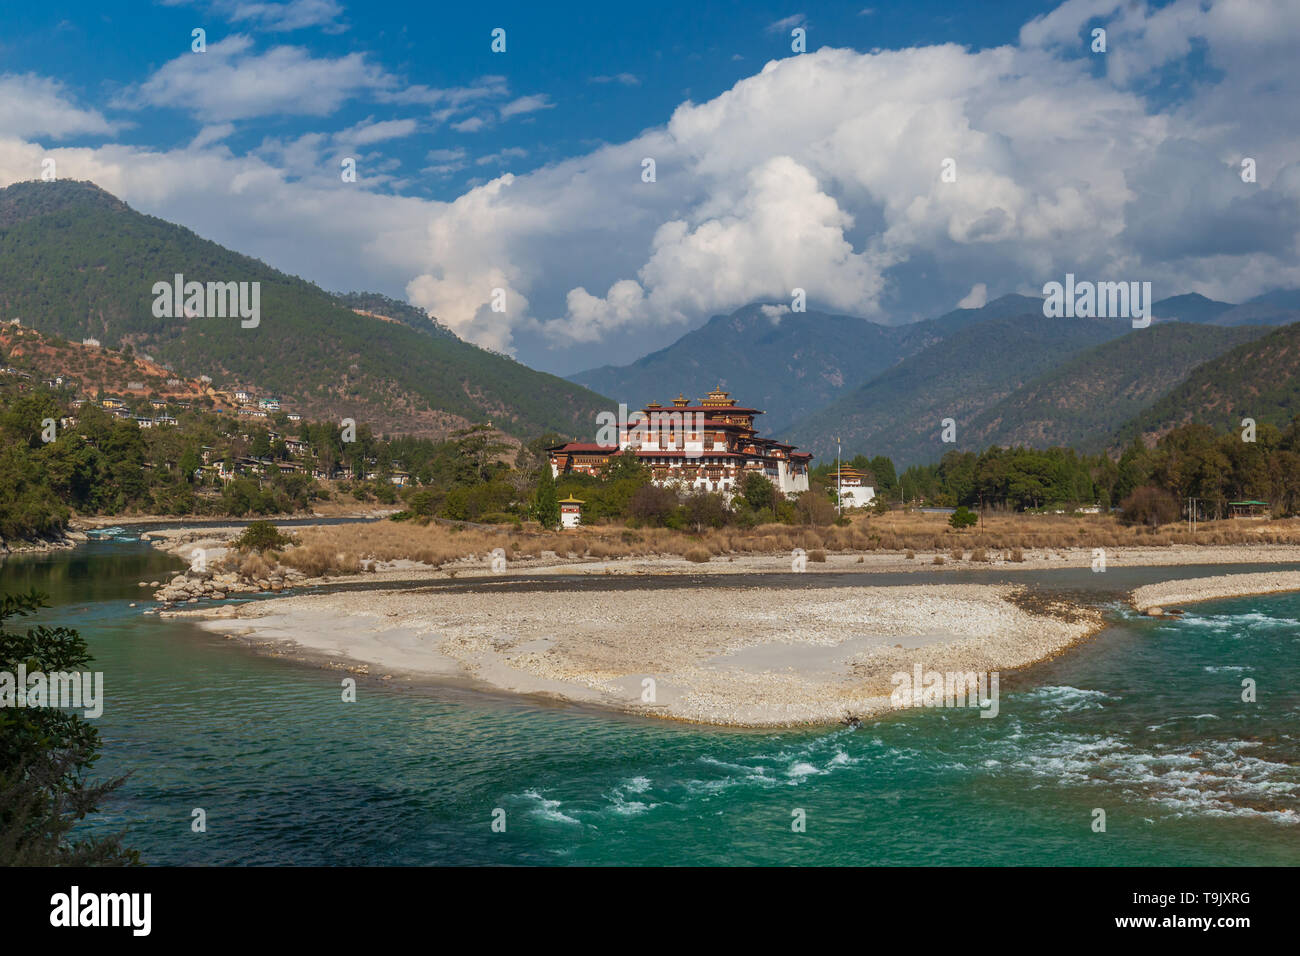 Punakha Dzong at the junction of Mo Chhu and Pho Chhu (Mo River and Cho River) forming Punakha Tsang Chhu (Punakha Tsang River) - Stock Image